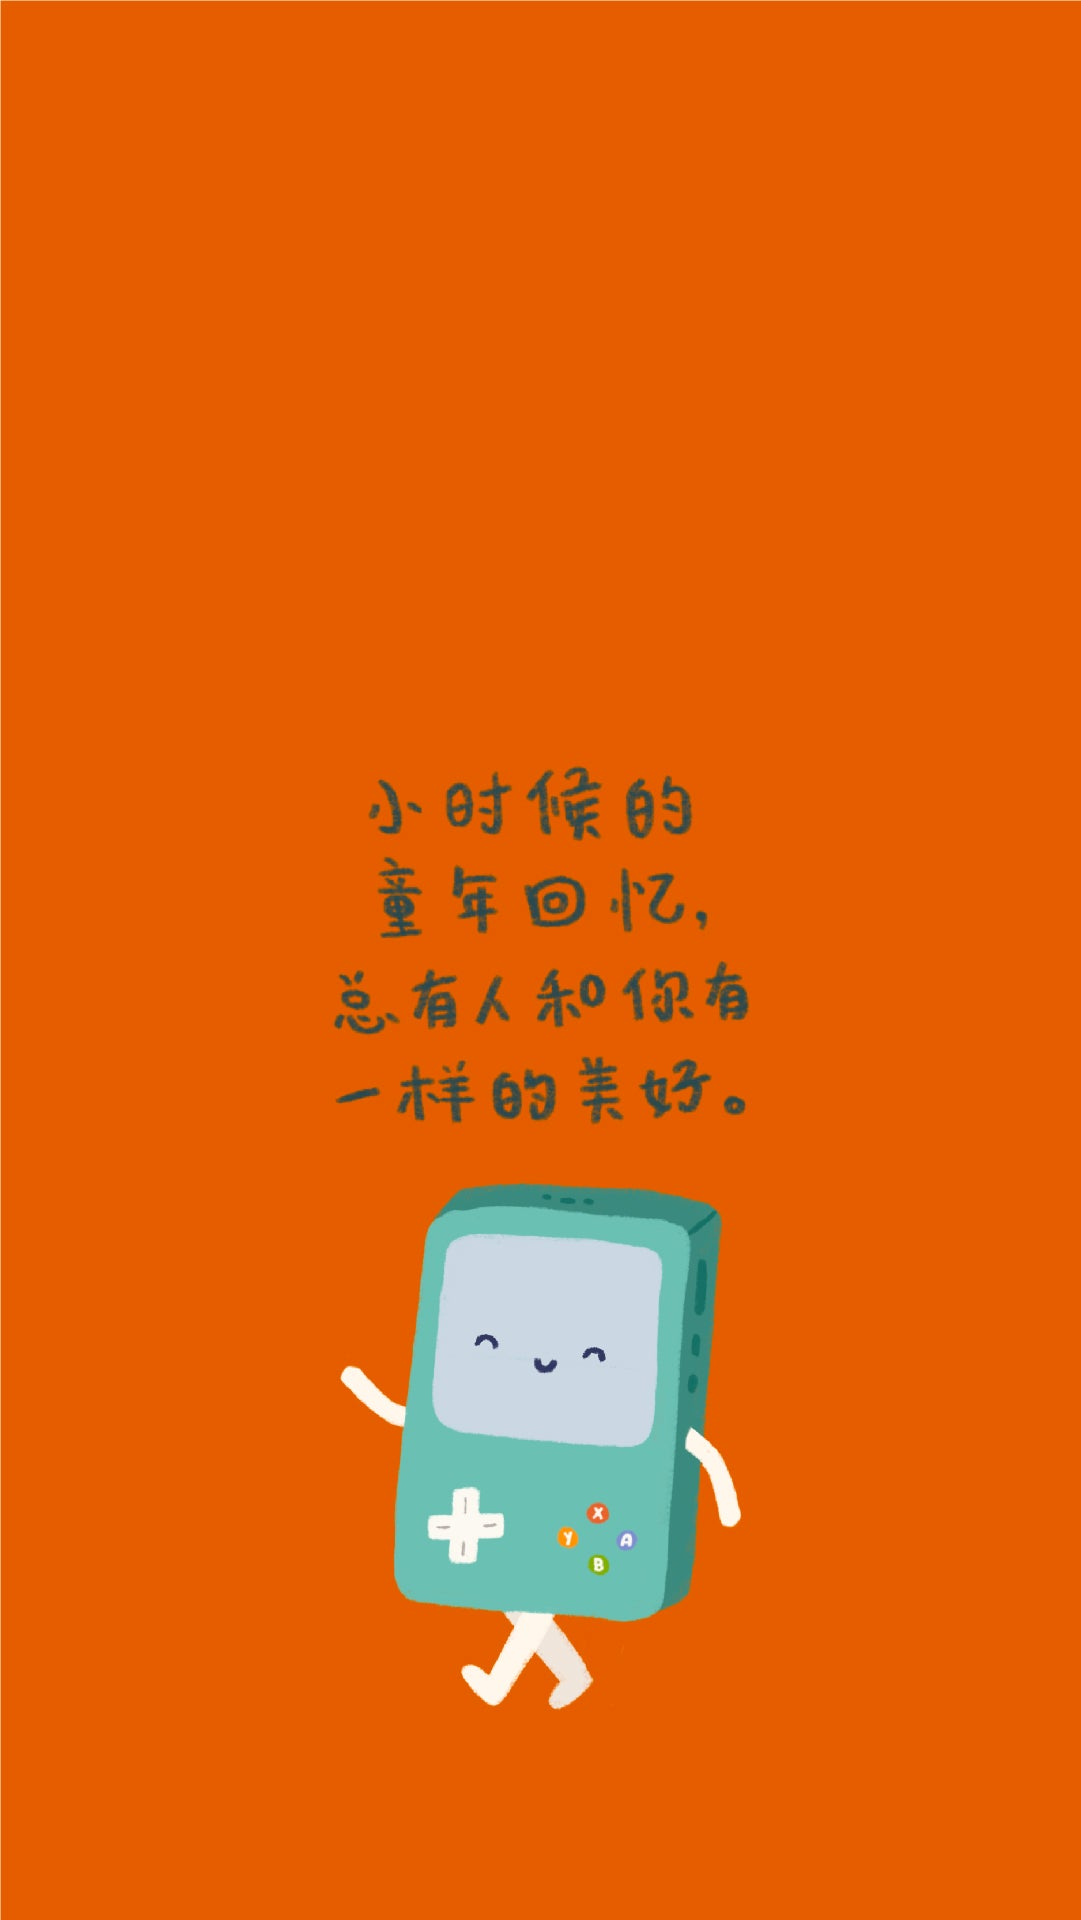 phone wallpaper of a digital illustration of a gameboy and a chinese verse about beautiful childhood memories being pleasant